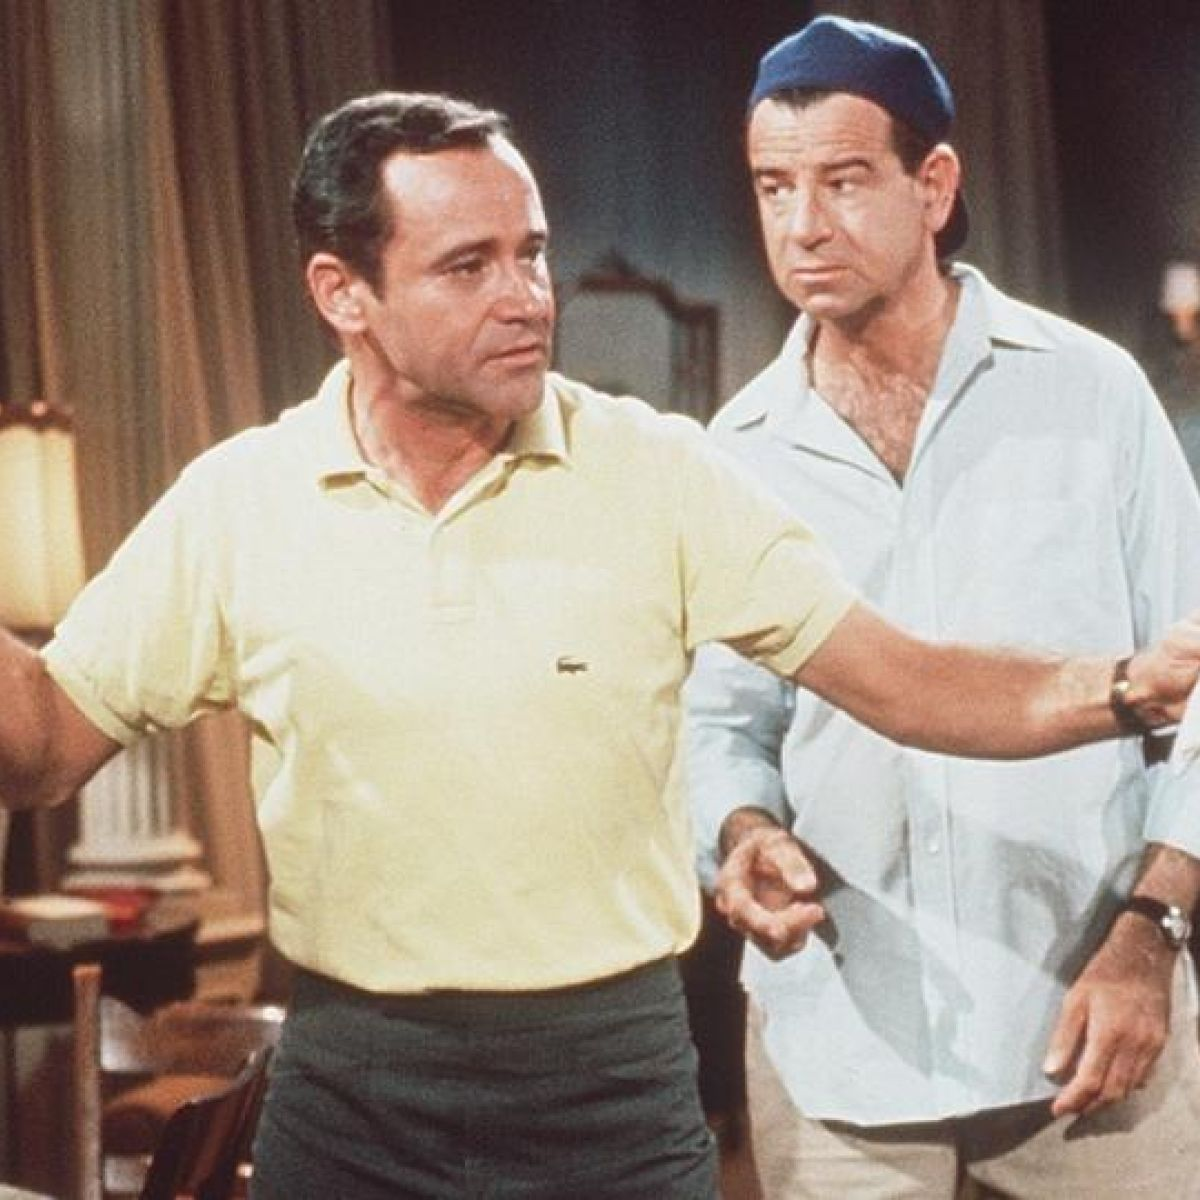 Neil Simon S Best Films From The Odd Couple To Biloxi Blues